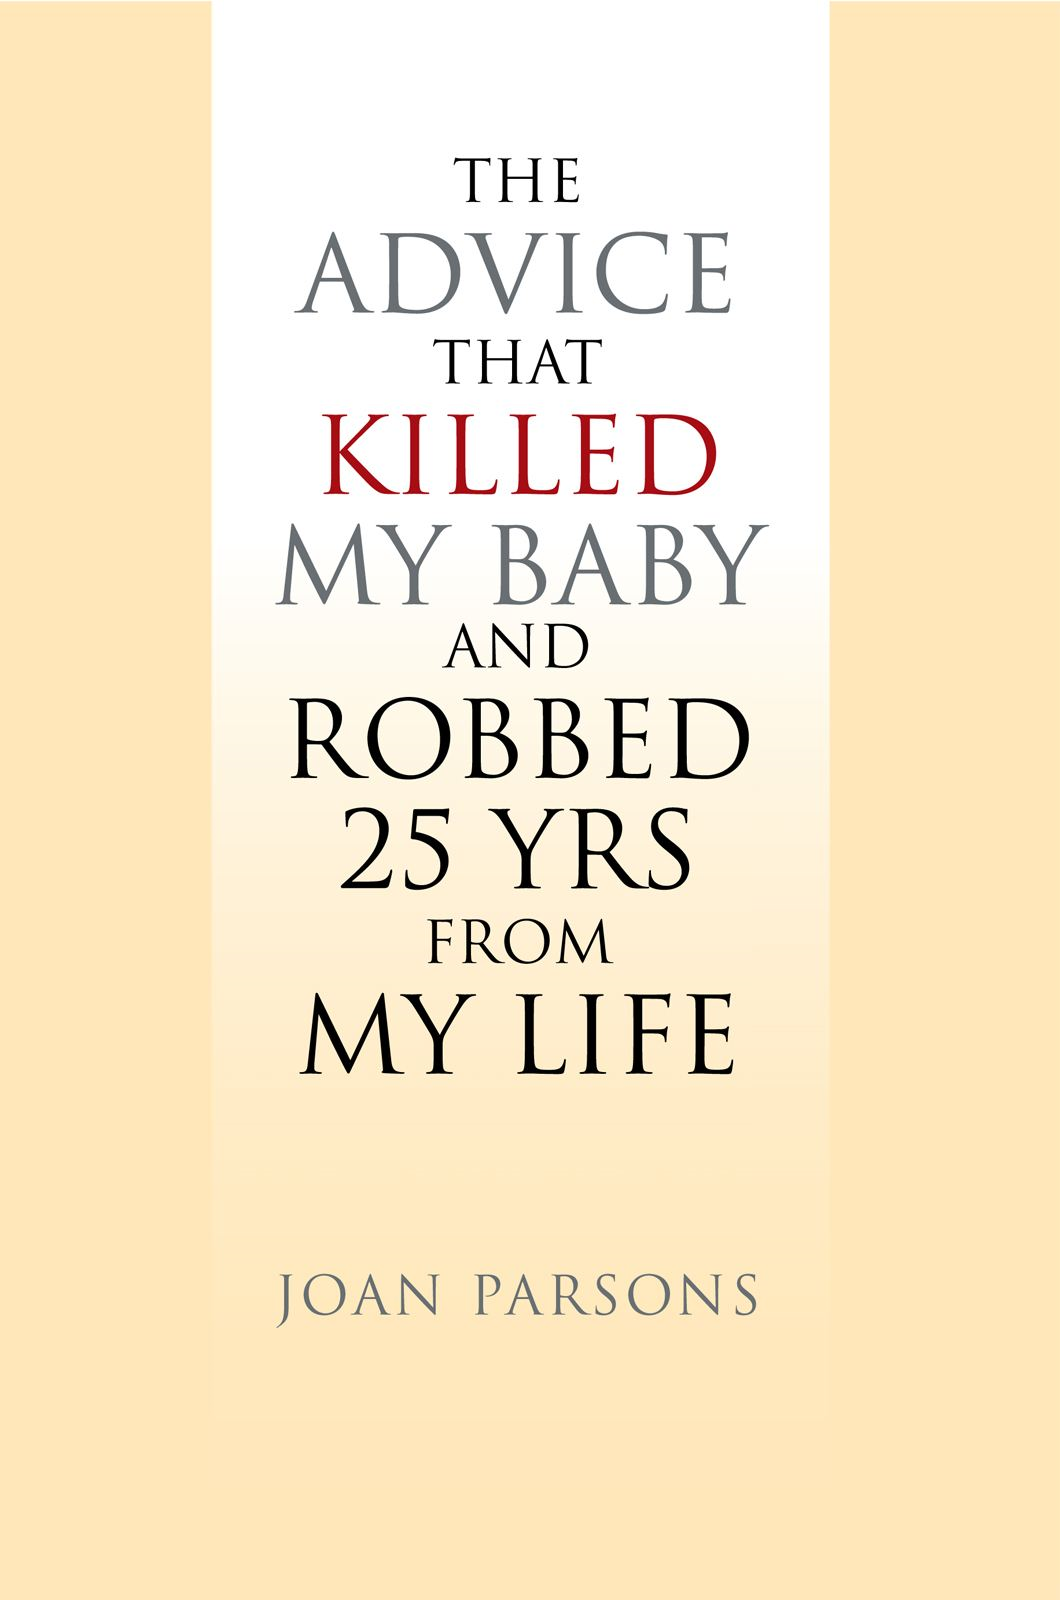 The Advice that Killed my Baby and Robbed 25 yrs from my Life